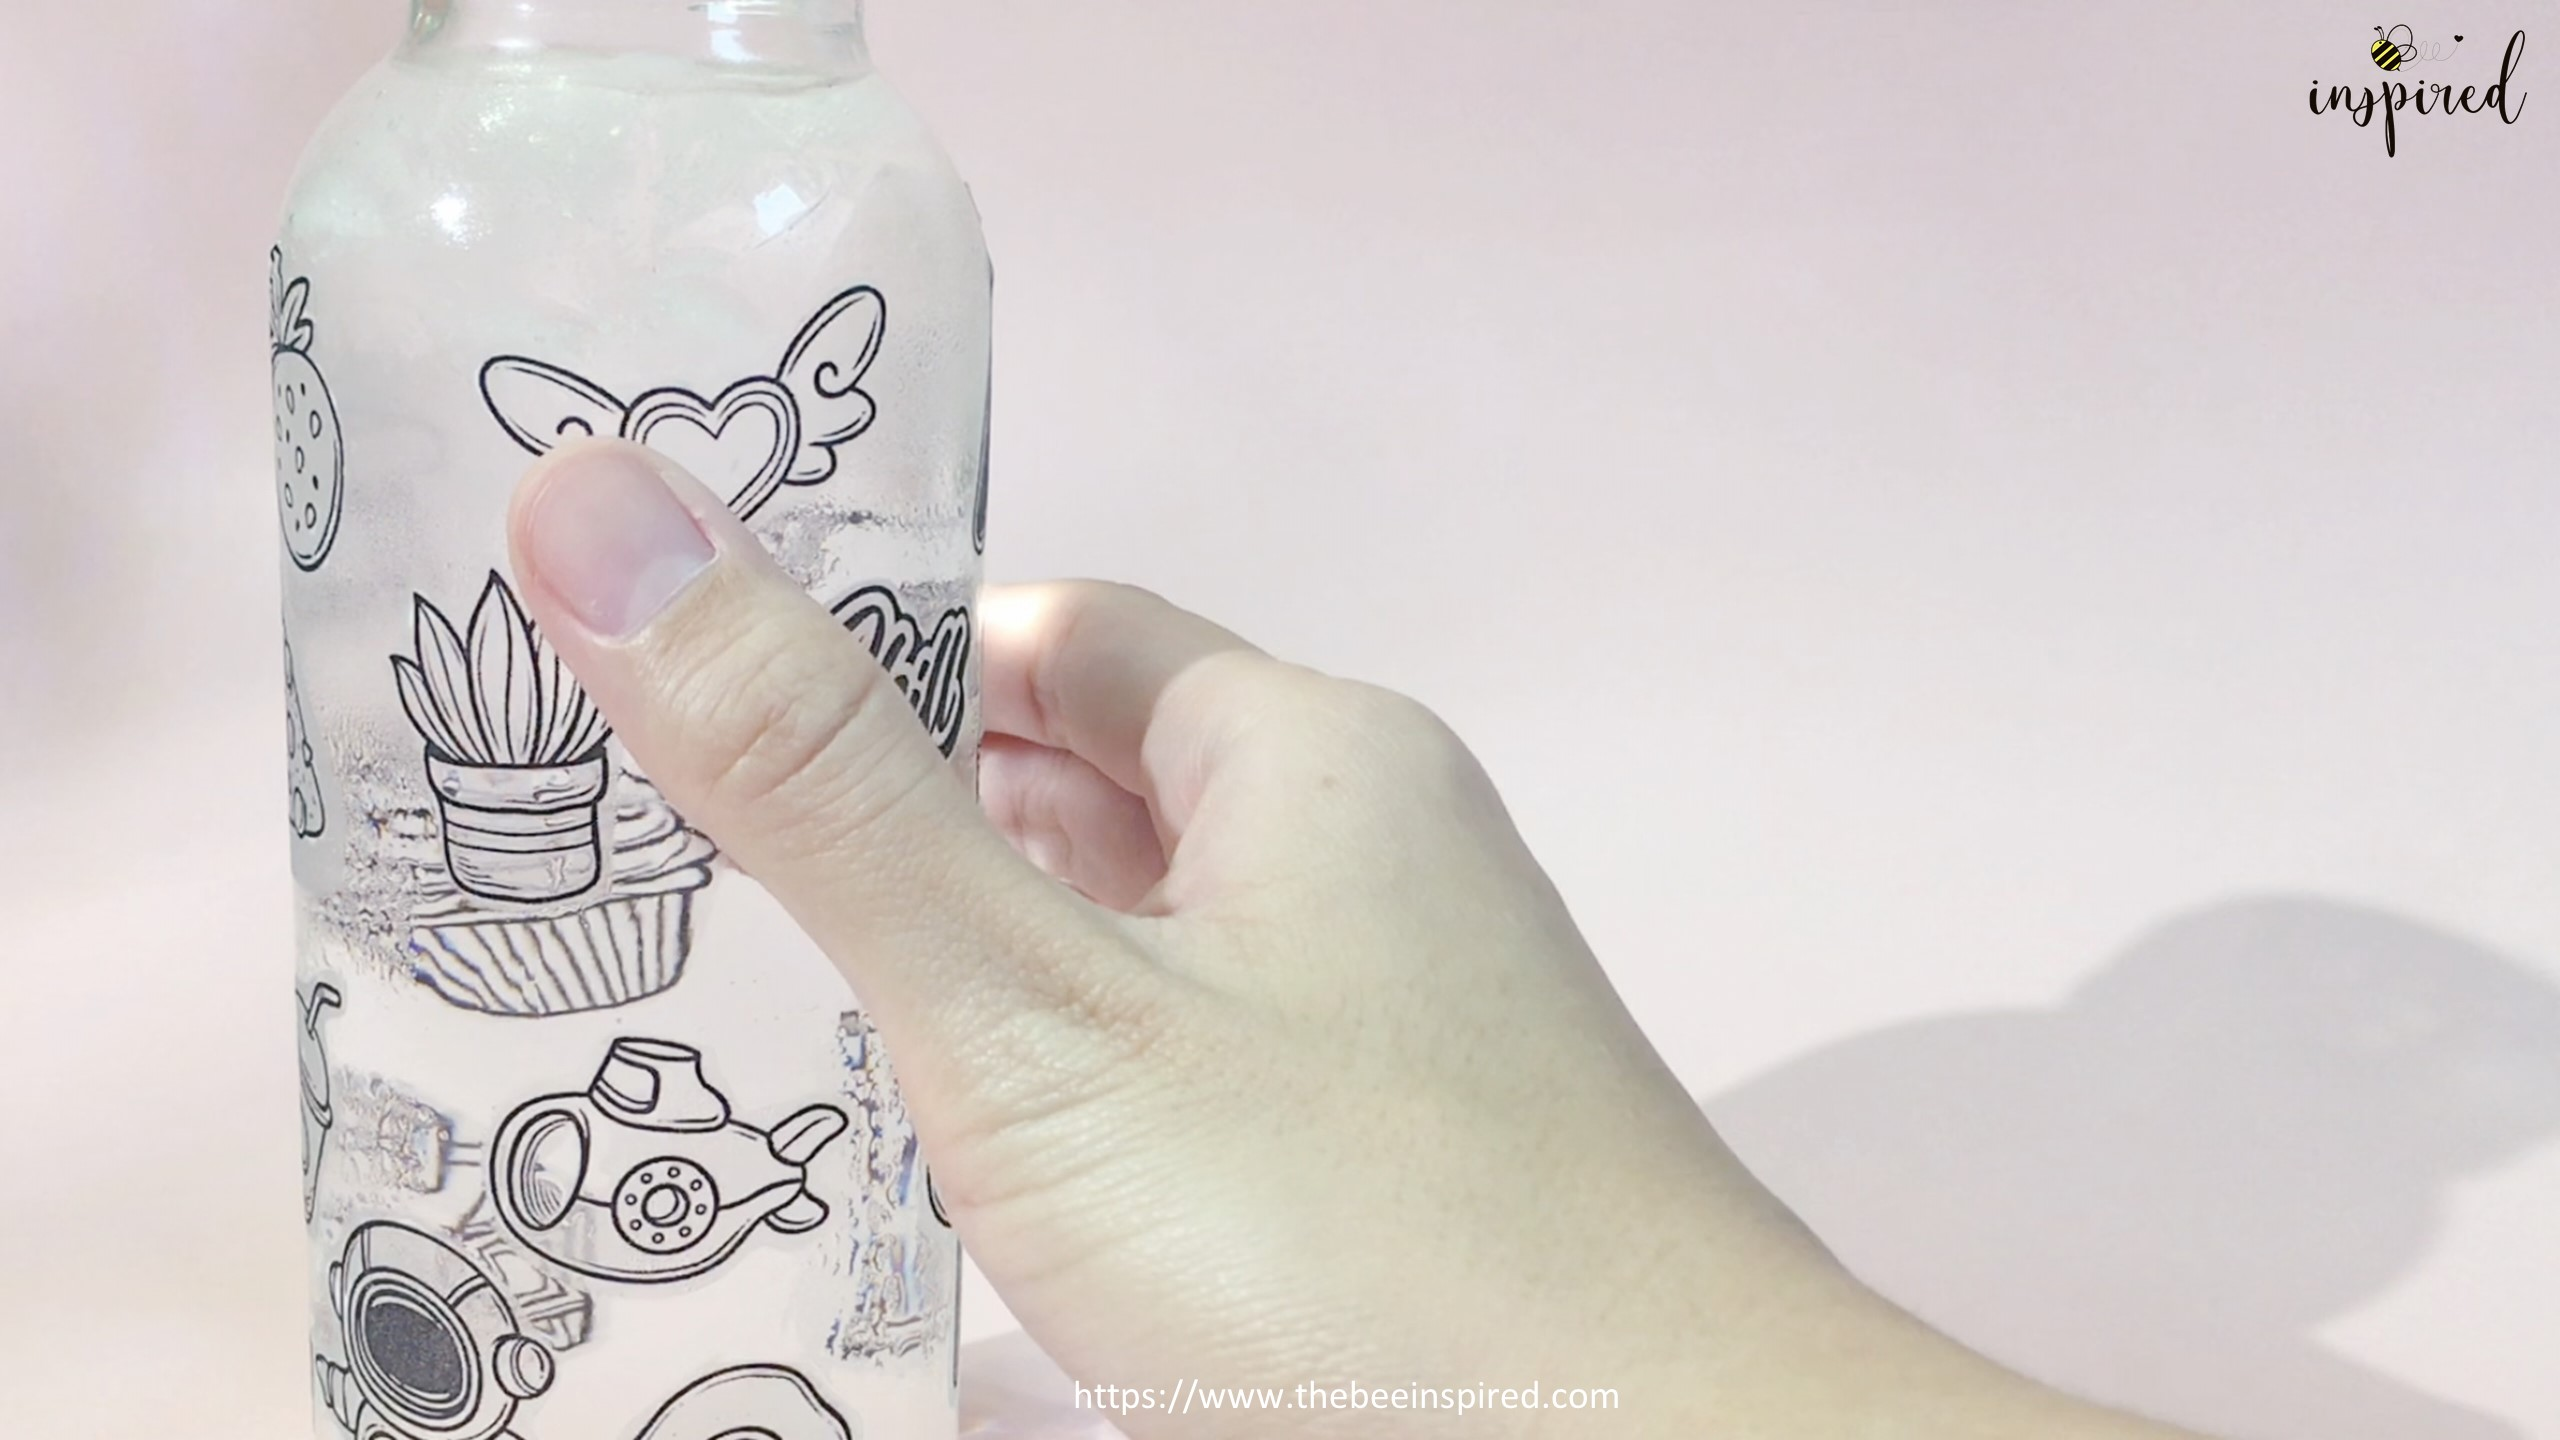 Water Resistant Test with ClearTransparent Sticker from Clear Packaging Tape_4